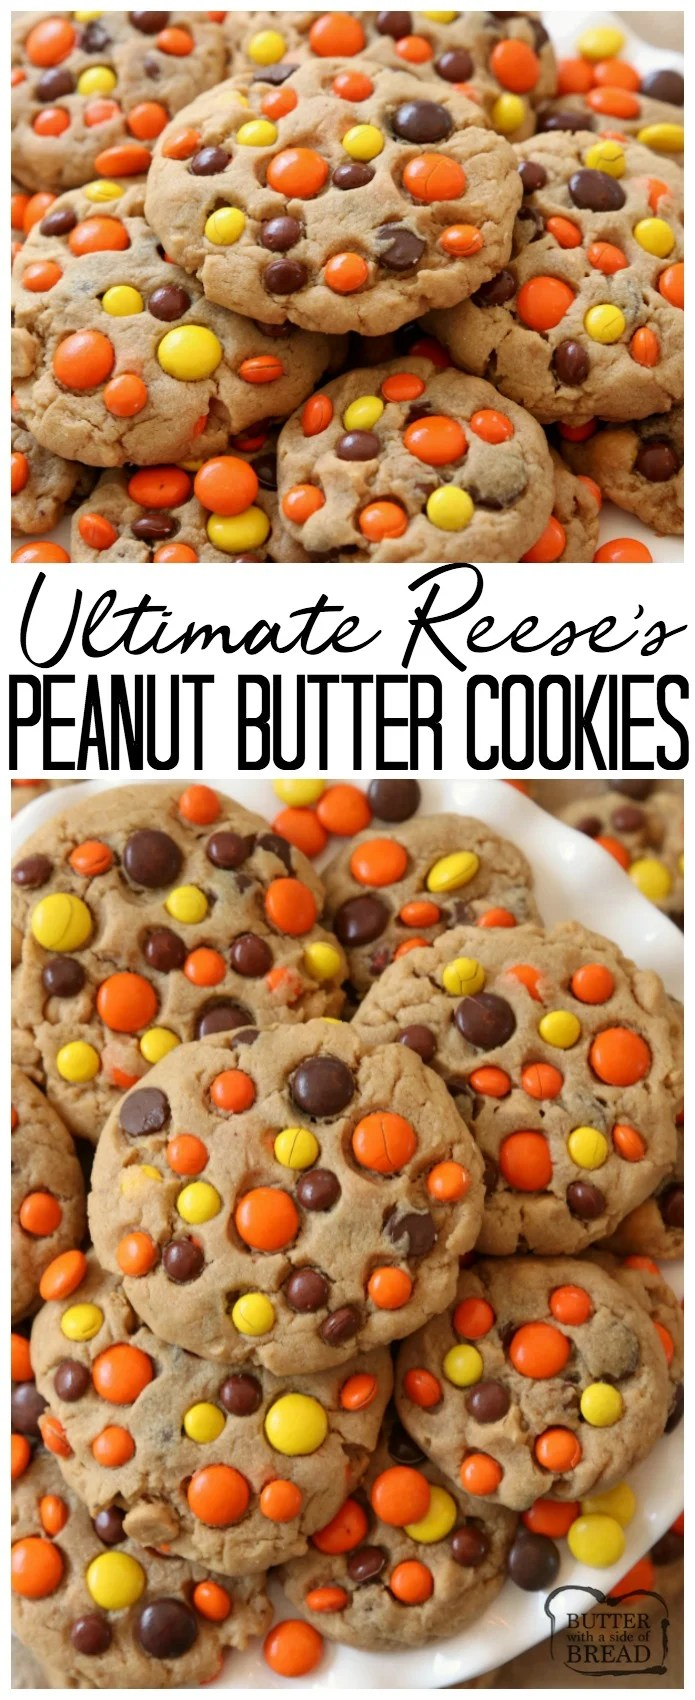 Best Ever Reese's Peanut Butter Cookies recipe made with a full cup of peanut butter! We added chocolate chips plus peanut butter chips & Reese's Pieces to our favorite peanut butter cookie recipe to get the ULTIMATE chocolate peanut butter cookies! #Cookie #recipe from Butter With A Side of Bread #Reeses #peanutbutter #food #dessert